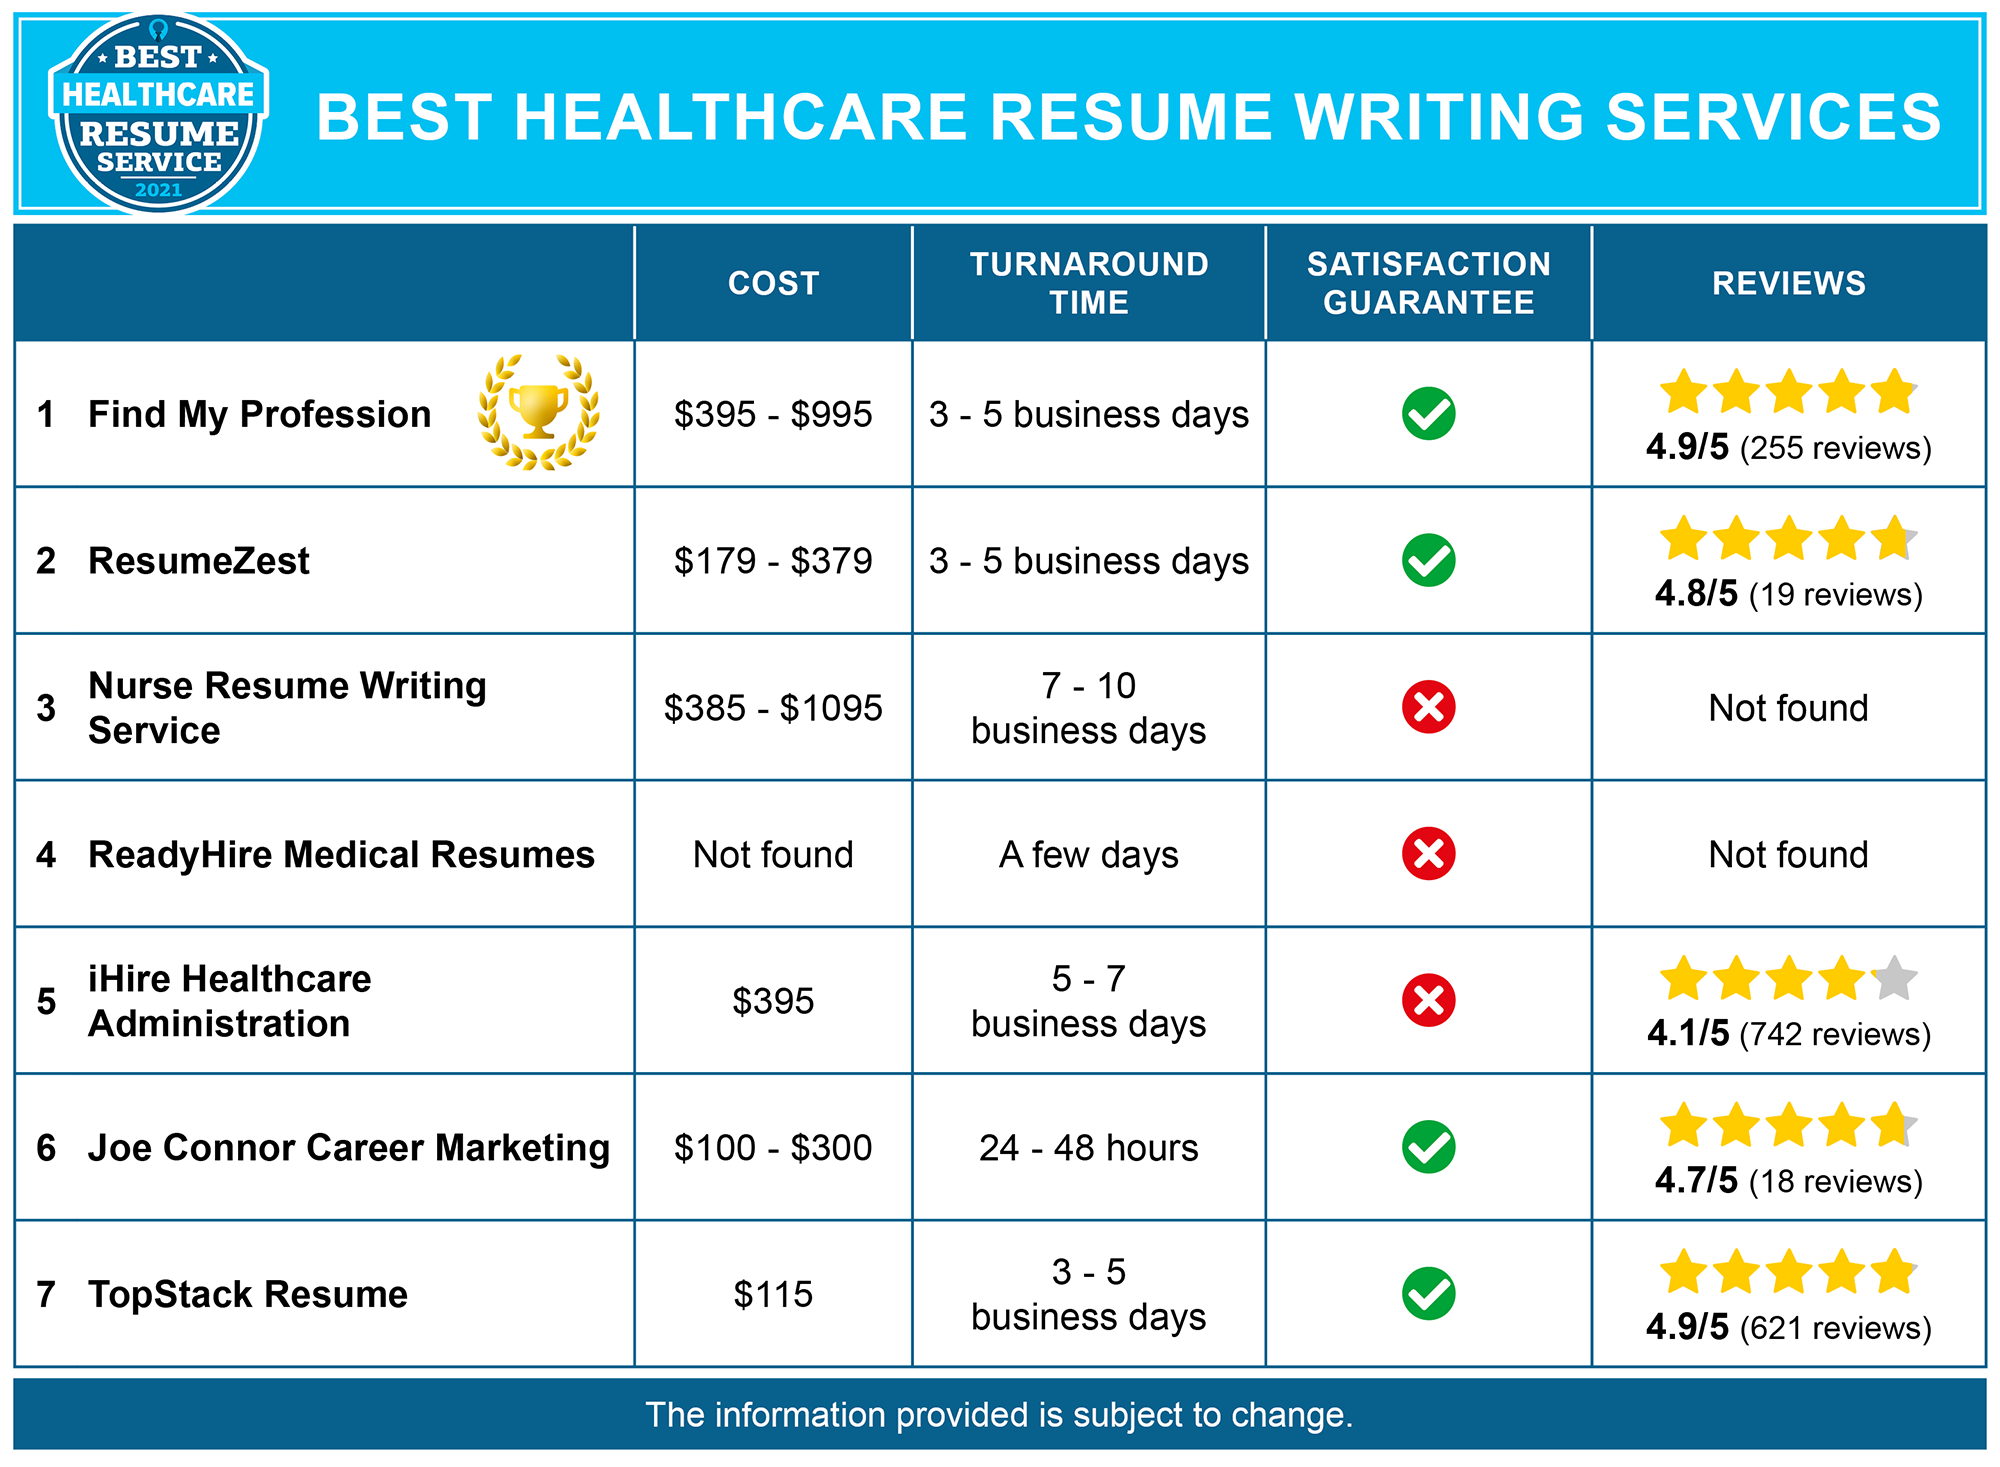 7 Best Healthcare Resume Writing Services